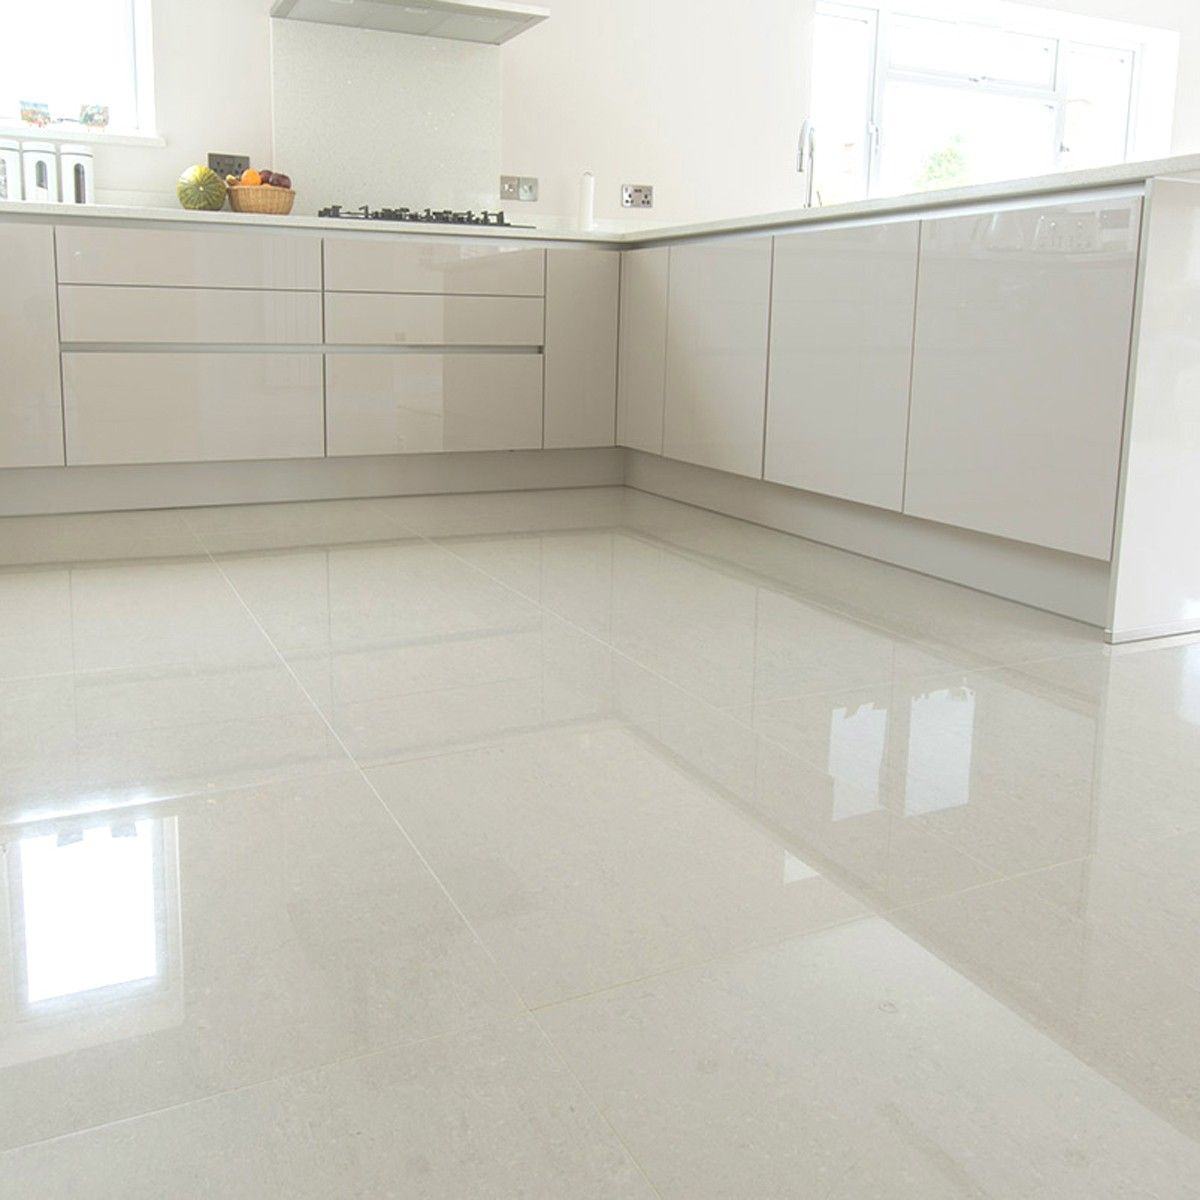 Calacatta white gloss floor tiles have an attractive marble effect super polished ivory porcelain floor tile is a very contemporary ivory tile does not require sealing great prices free samples and fast delivery dailygadgetfo Images